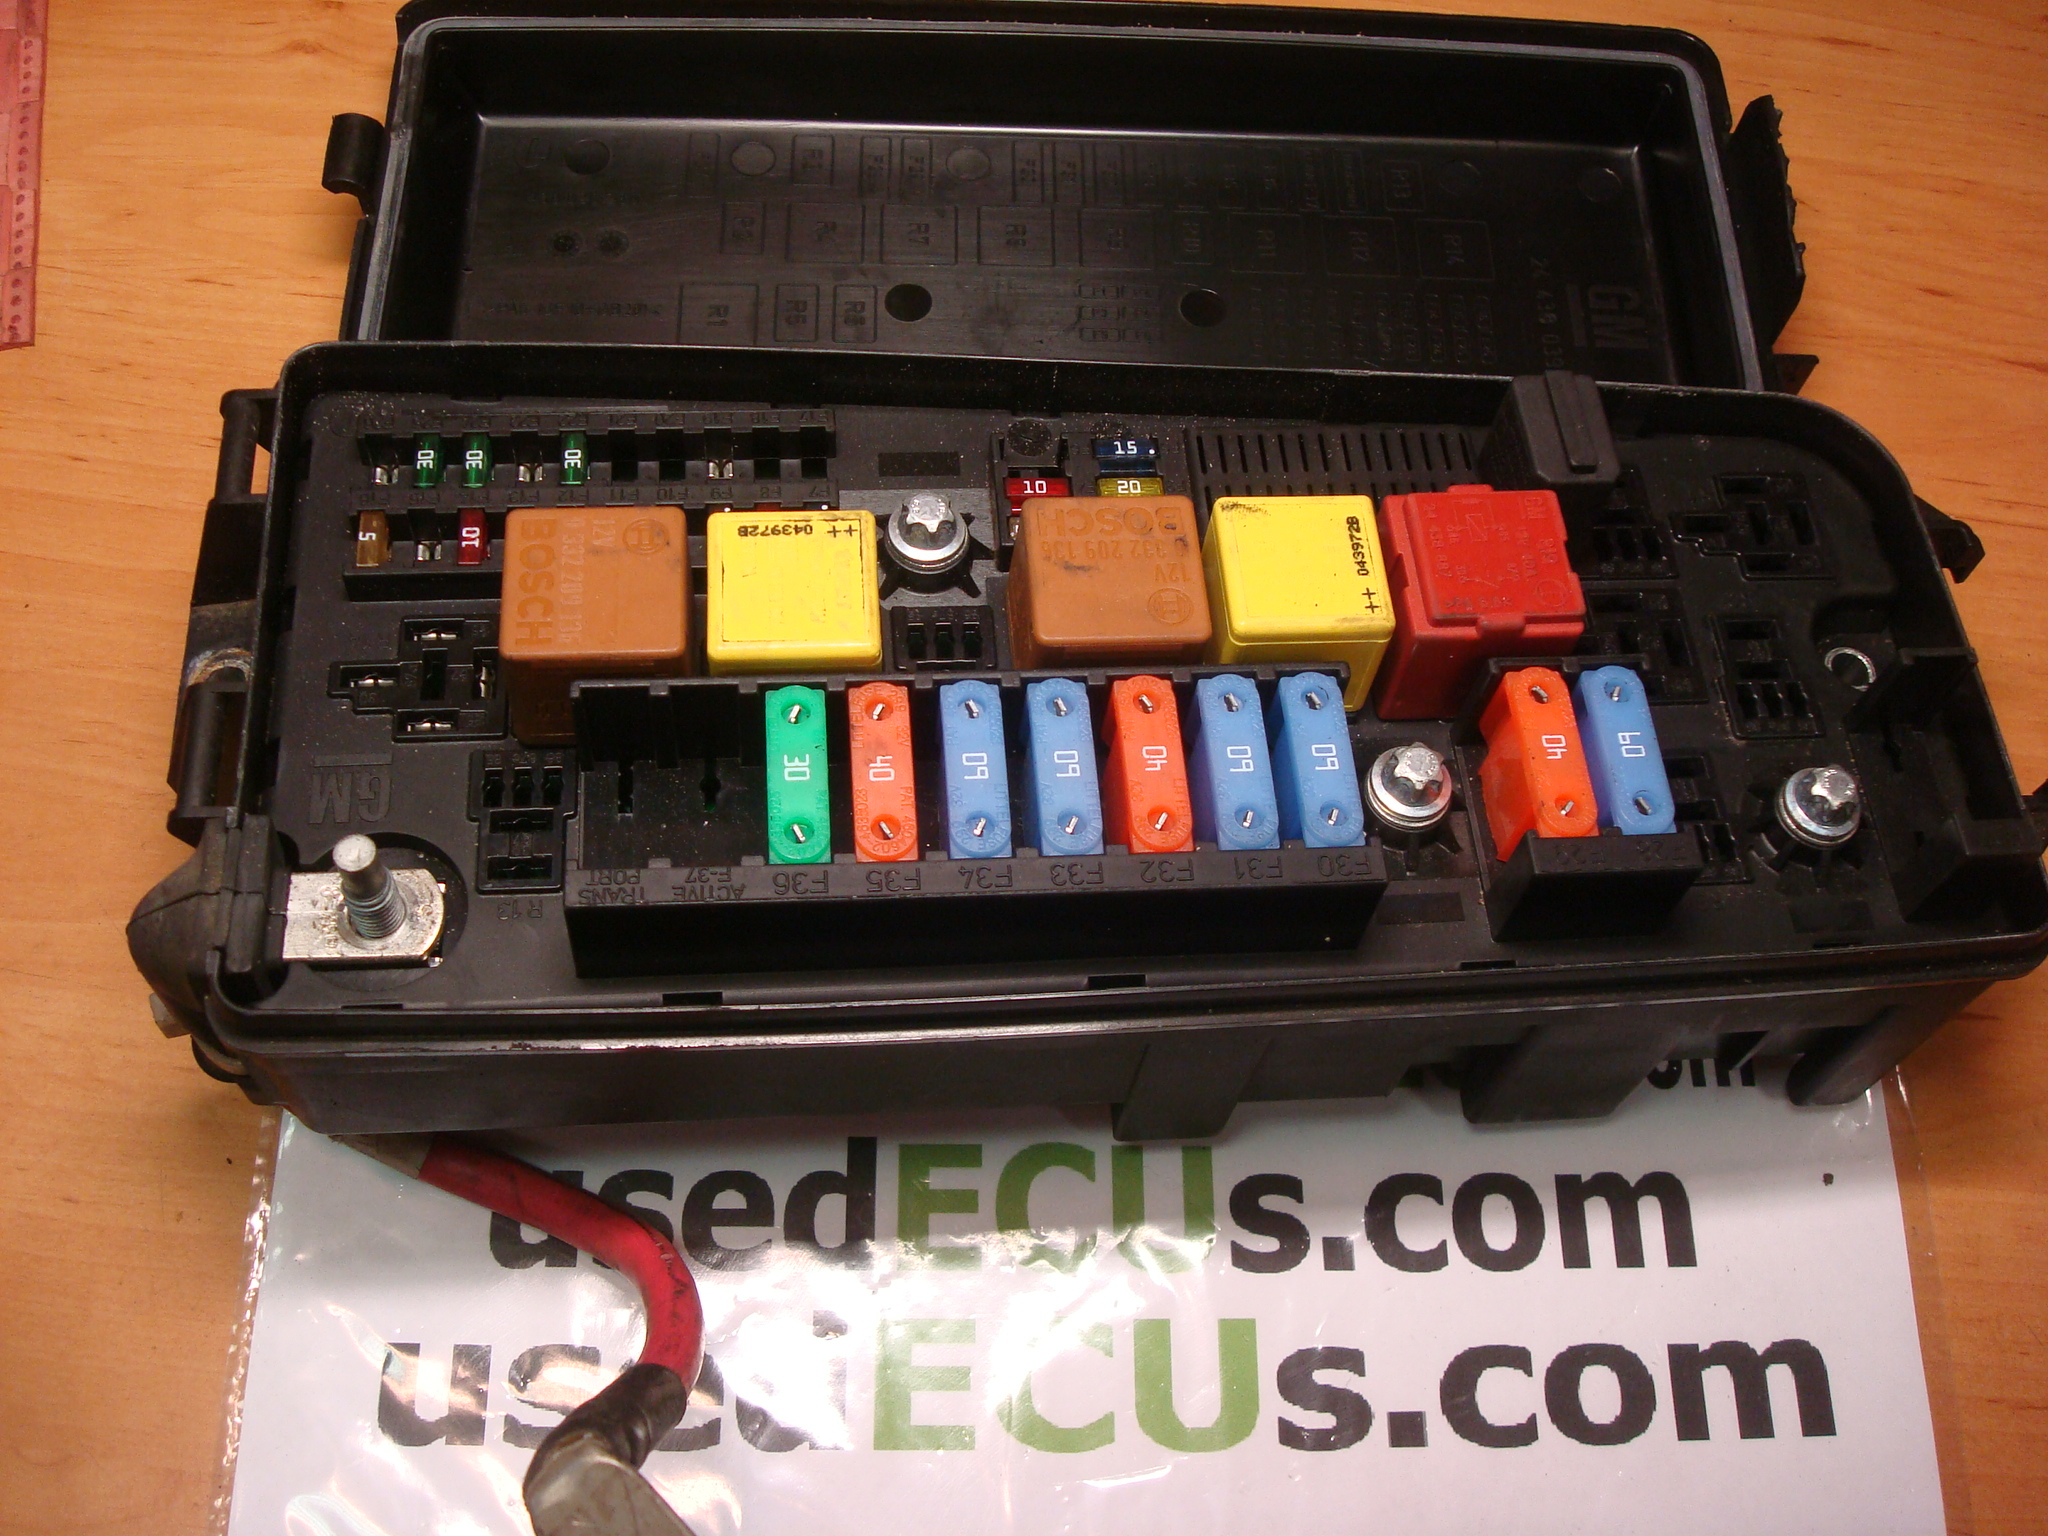 Opel Vauxhall Vectra C Fusebox With Lid Gm 13187505 Fuse Box Article 519066500 13 187 505 460023260